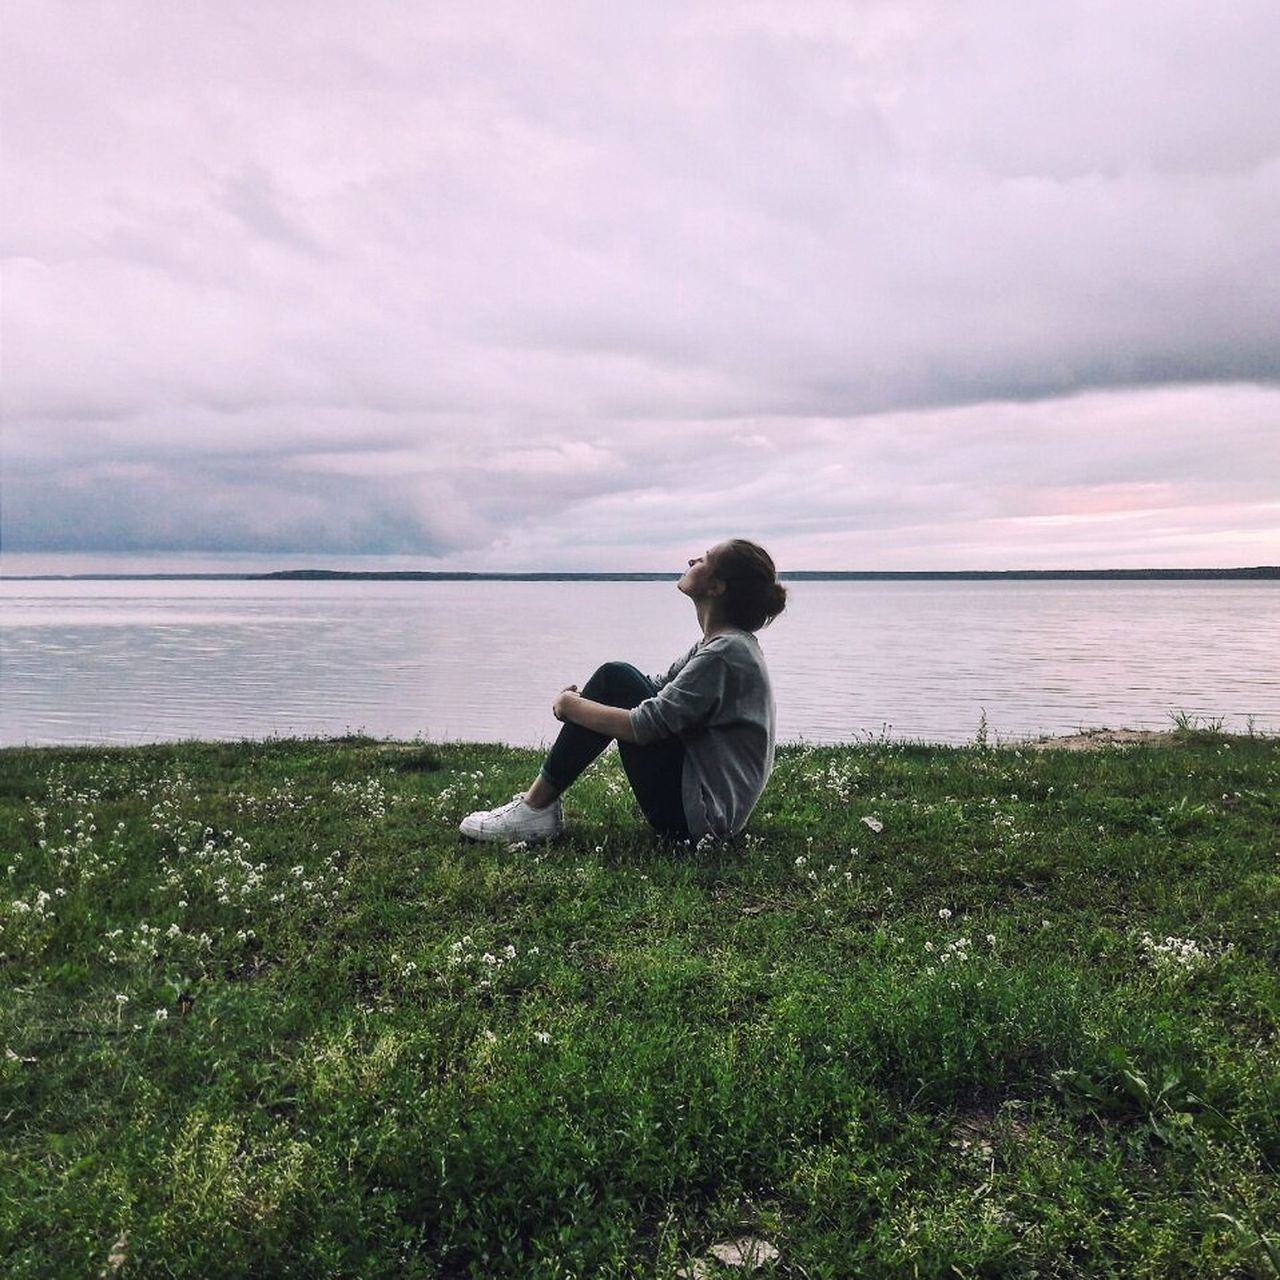 water, sea, horizon over water, nature, sky, scenics, tranquil scene, beauty in nature, tranquility, outdoors, one person, grass, fishing pole, day, cloud - sky, real people, full length, people